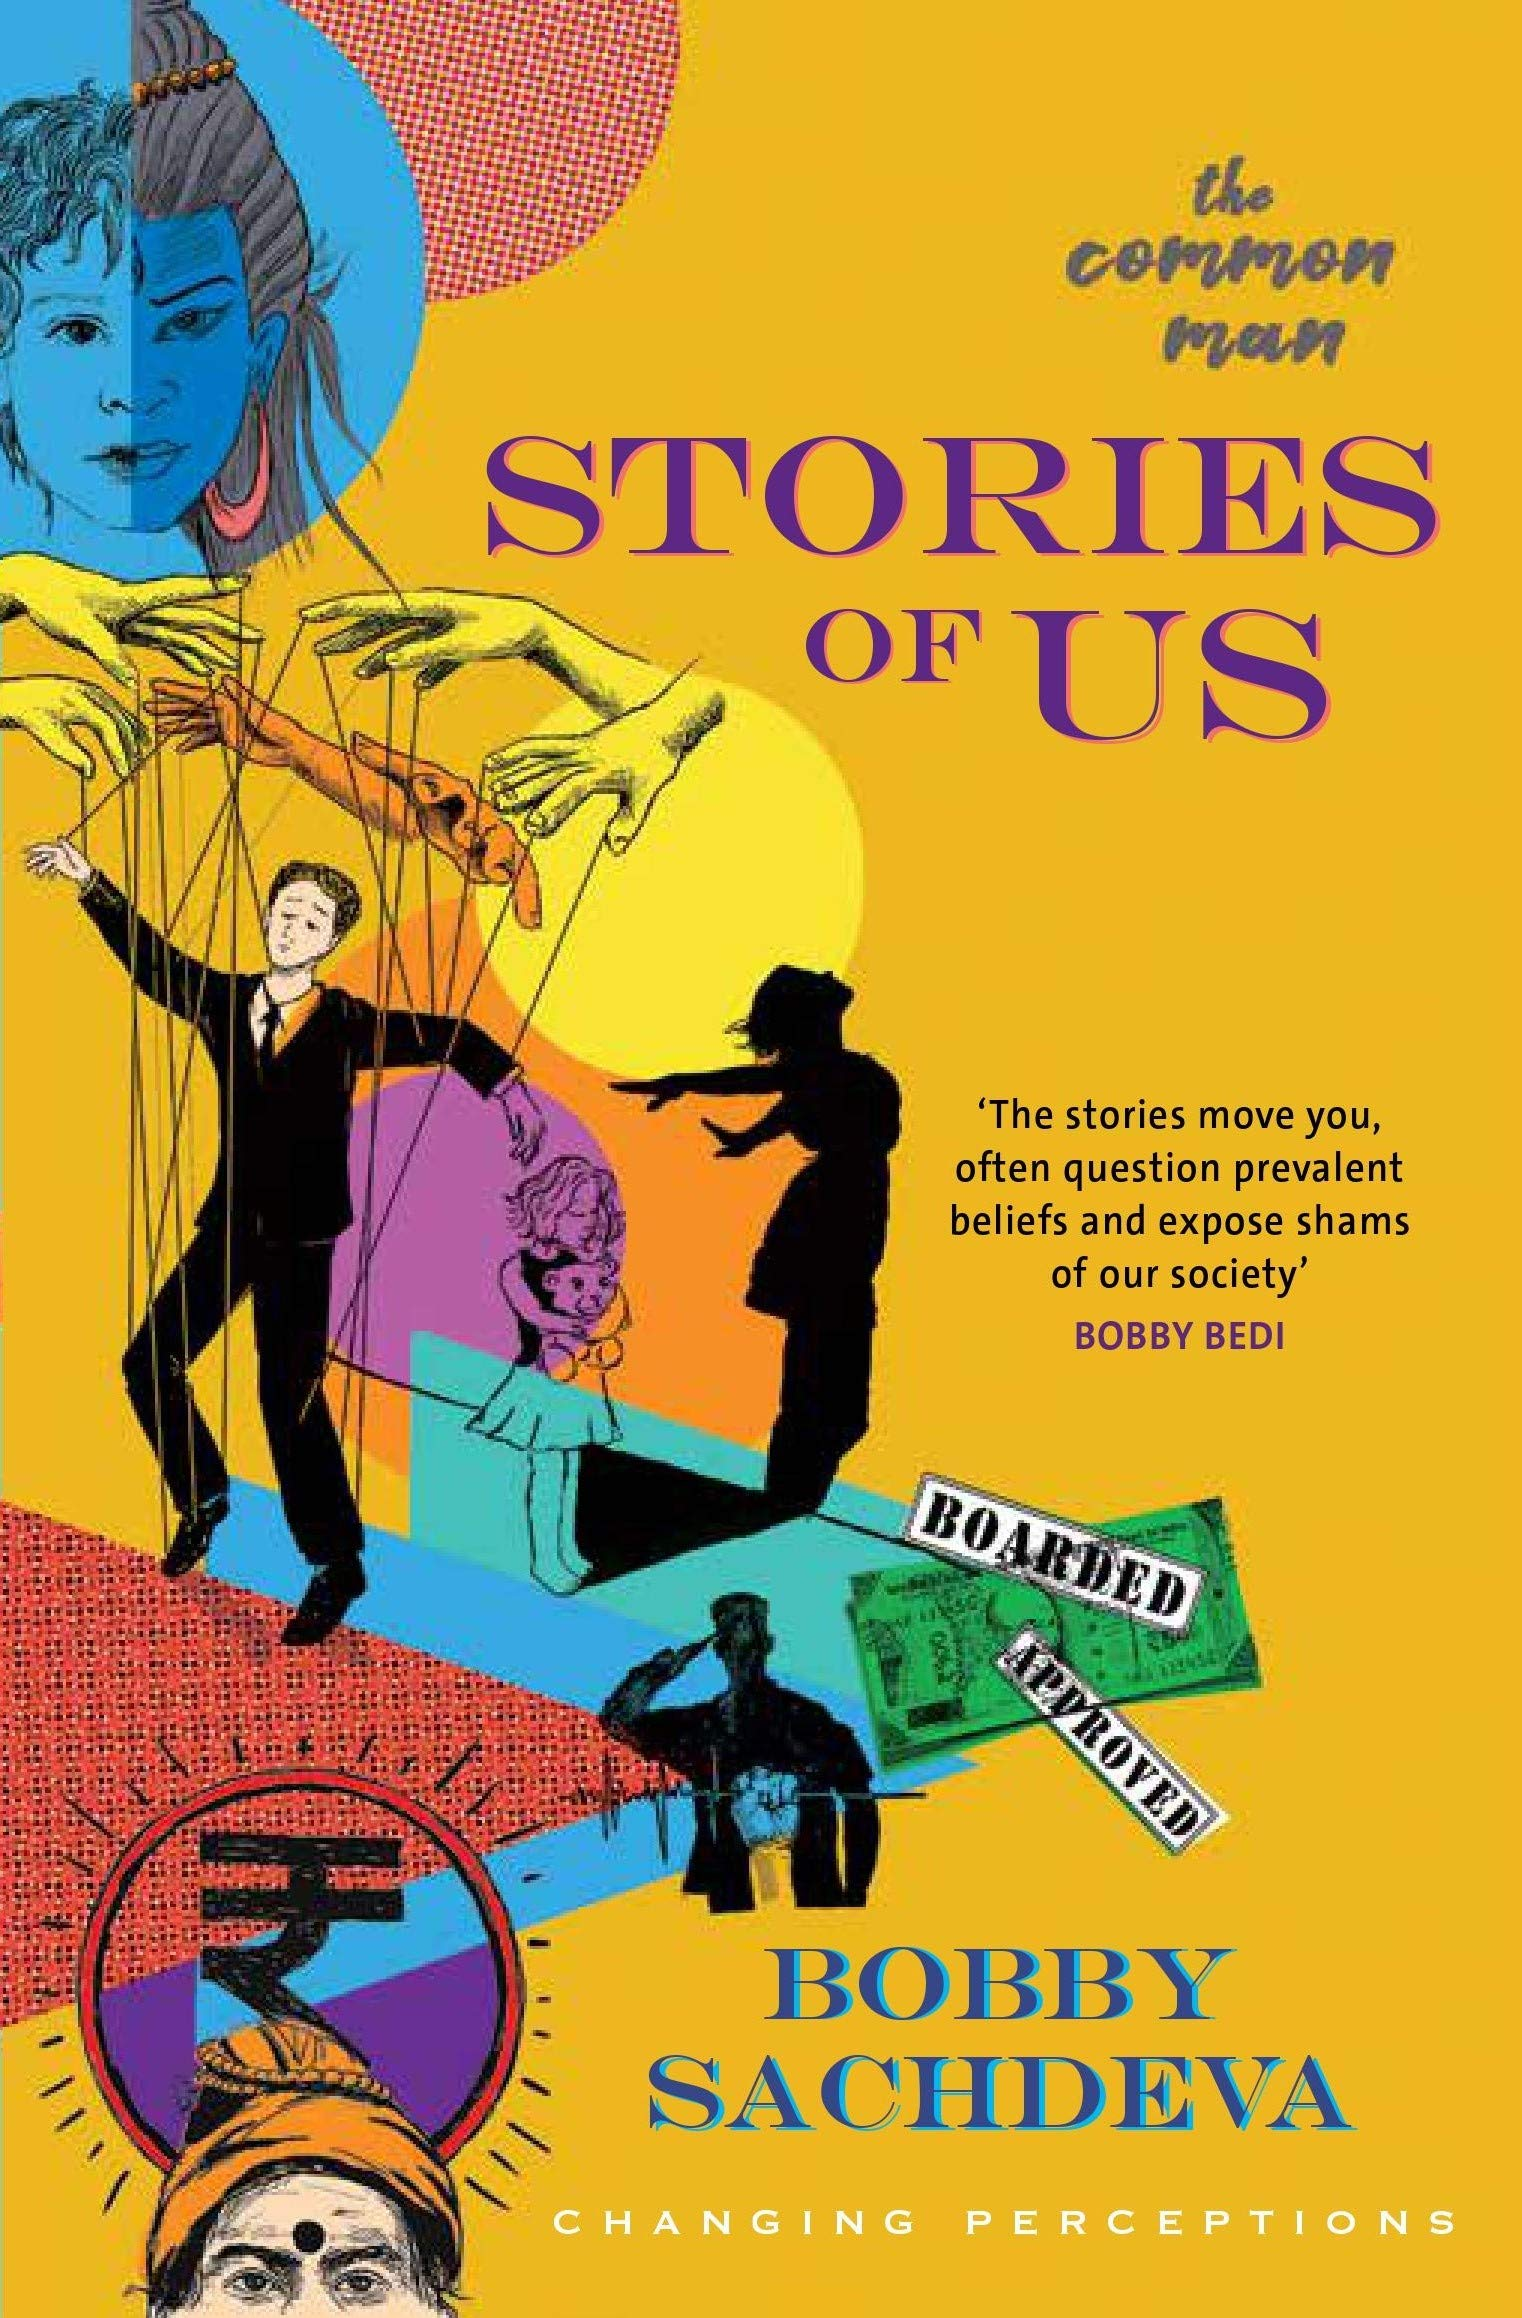 Book Review - Stories of Us by Bobby Sachdeva